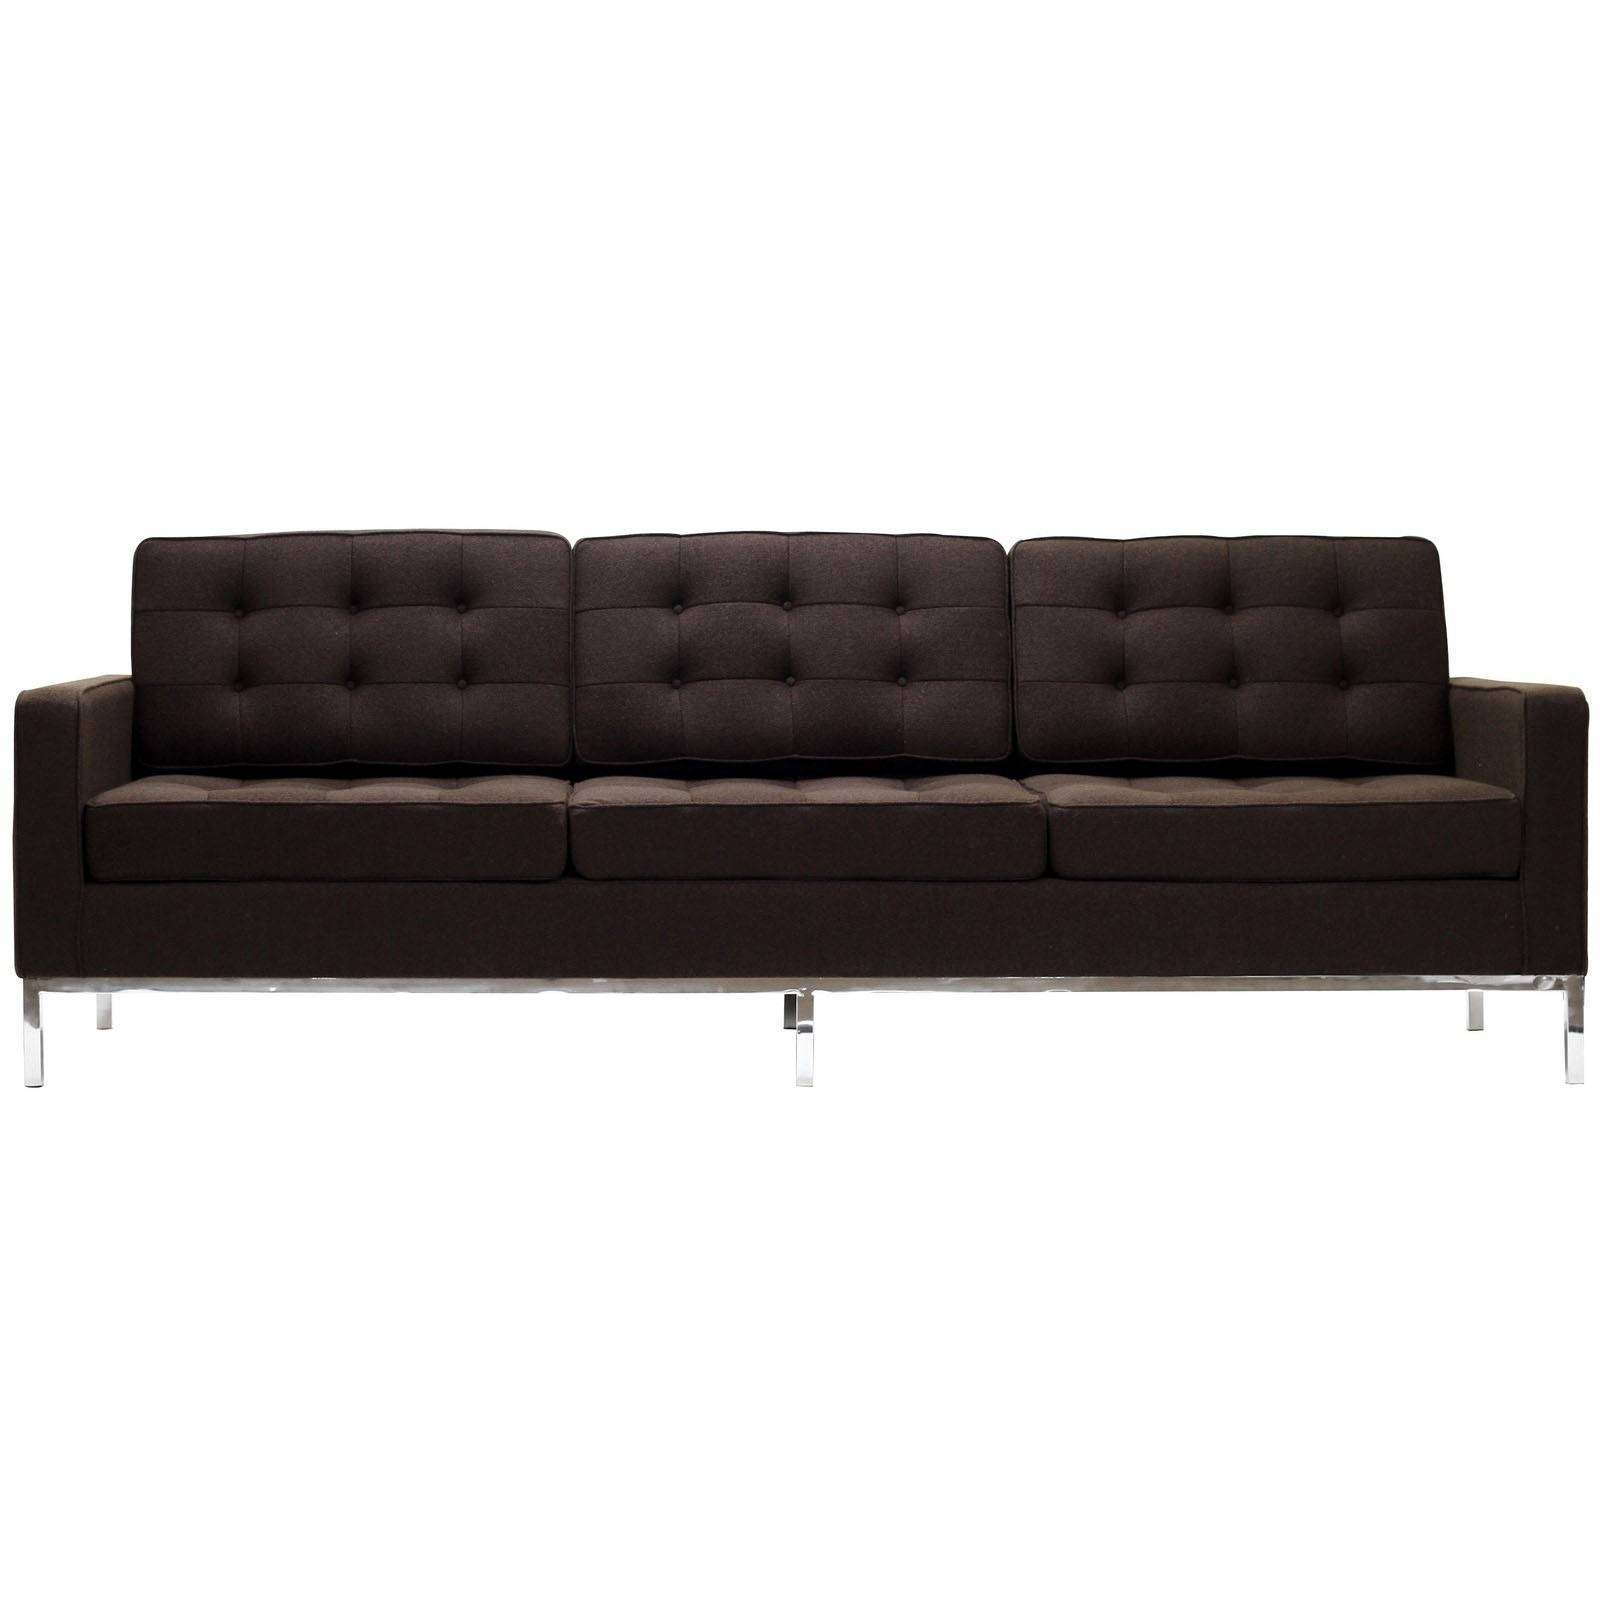 florence knoll sofa review who does the best quality sofas style couch wool